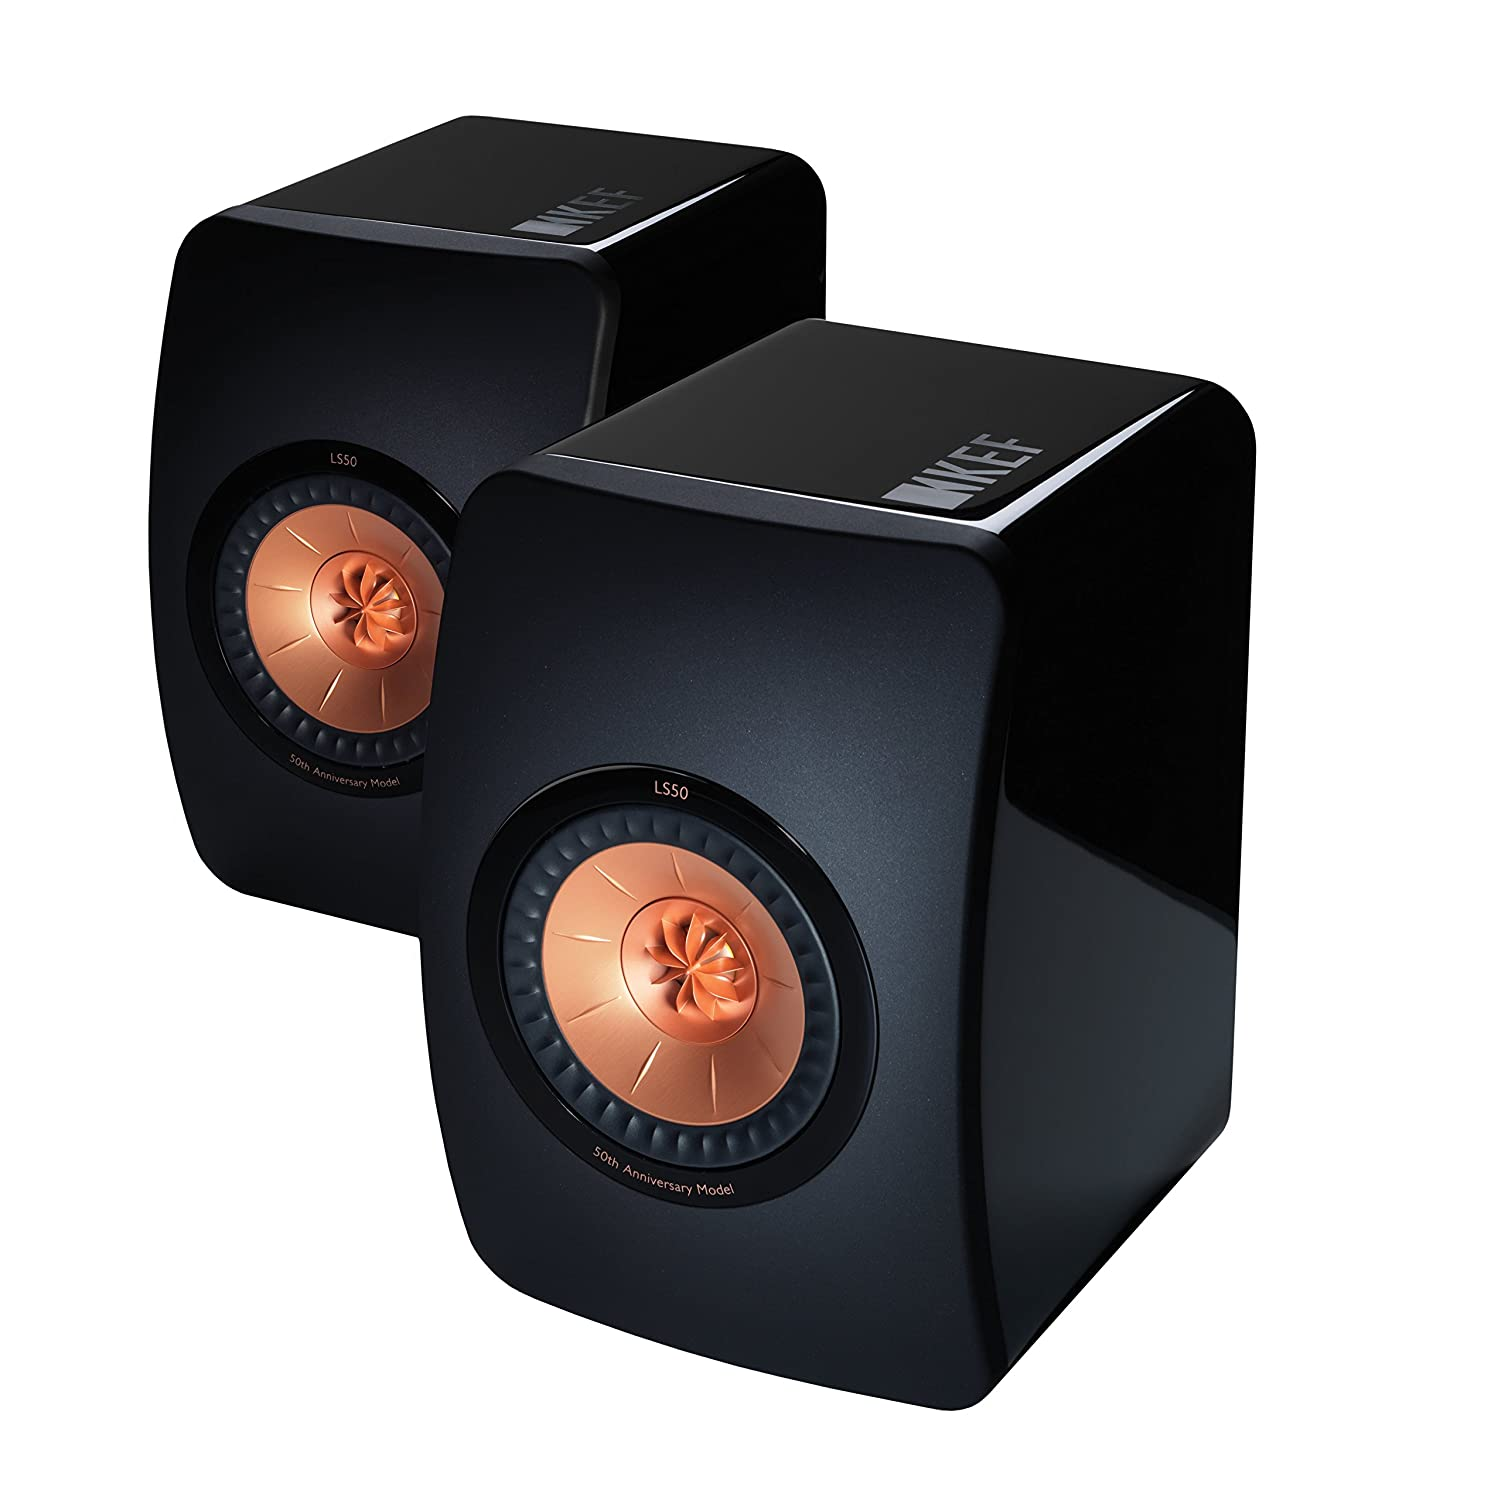 KEF LS50 Mini Monitor Black Friday Deals 2020